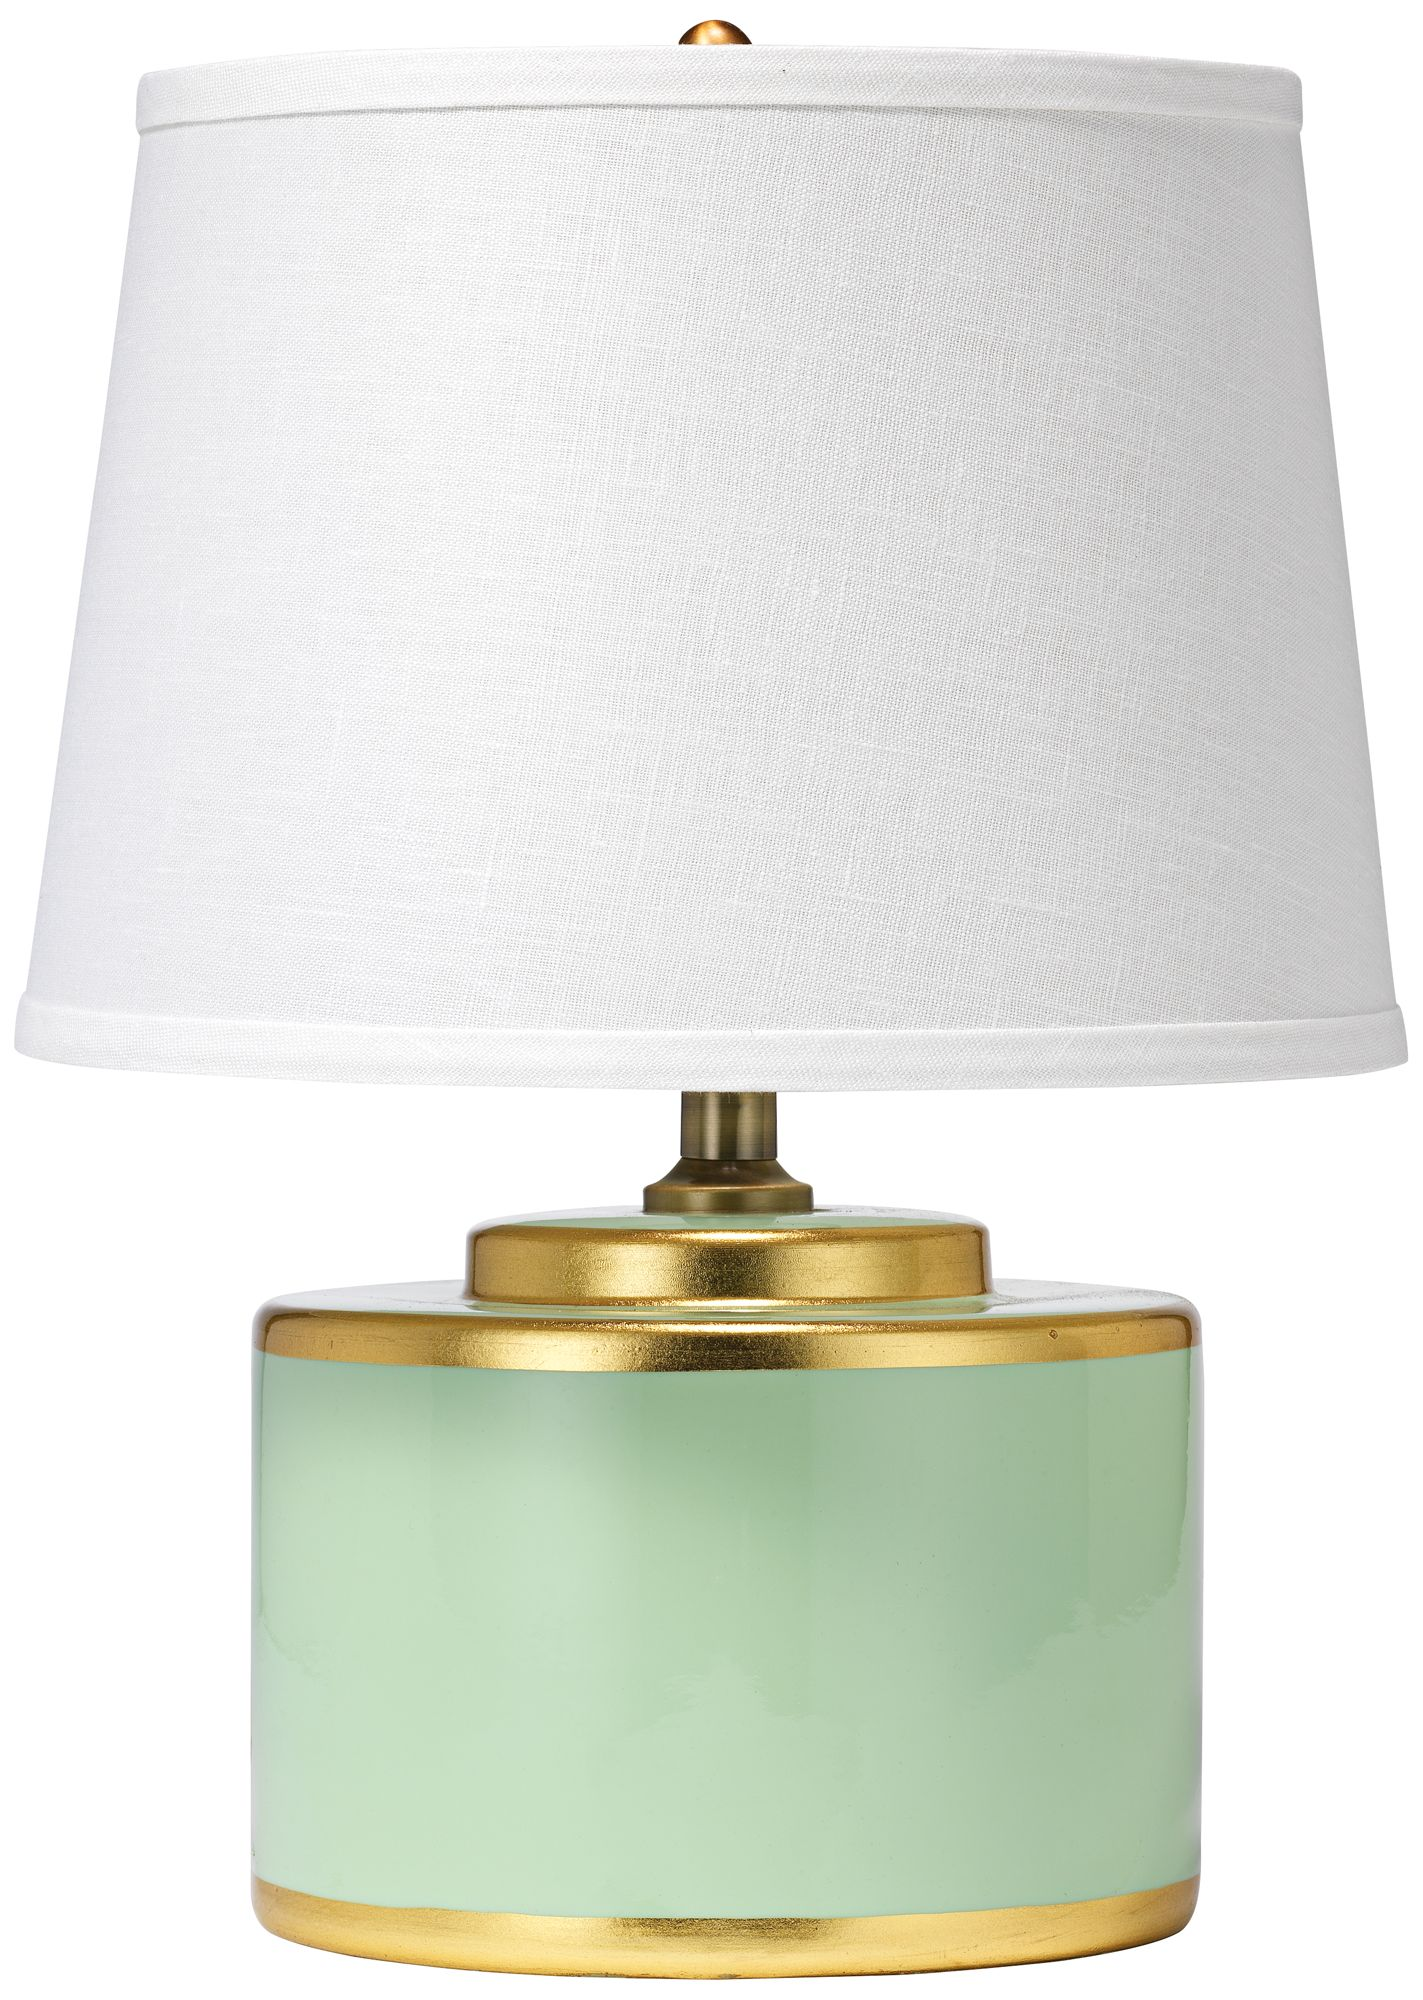 Amazing Jamie Young Basin Seafoam Green 2 Tier Ceramic Table Lamp   #19Y25 | Lamps  Plus Design